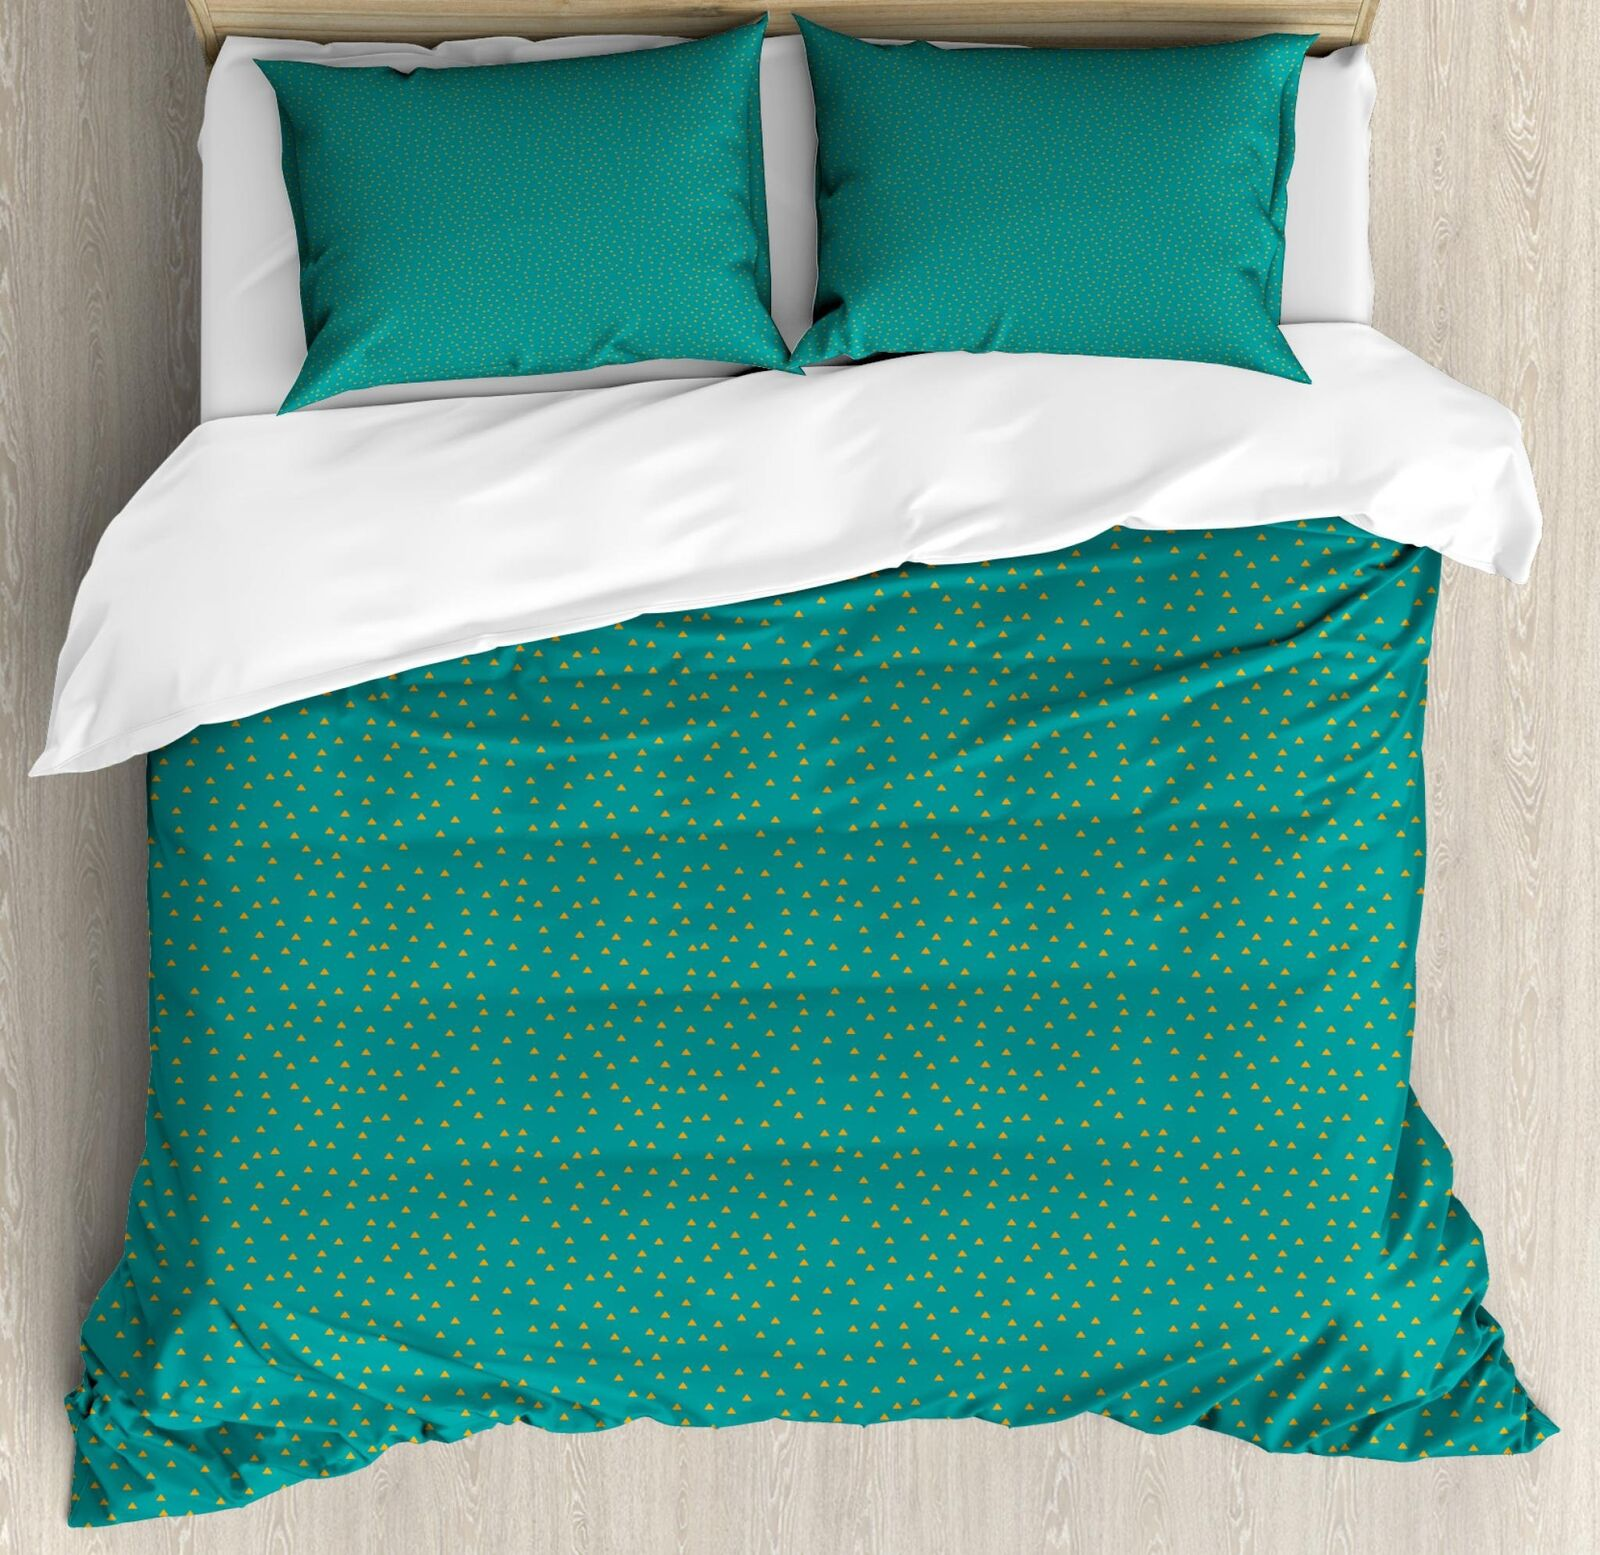 Simple Pattern Duvet Cover Set Twin Queen King Dimensiones with Pillow Shams